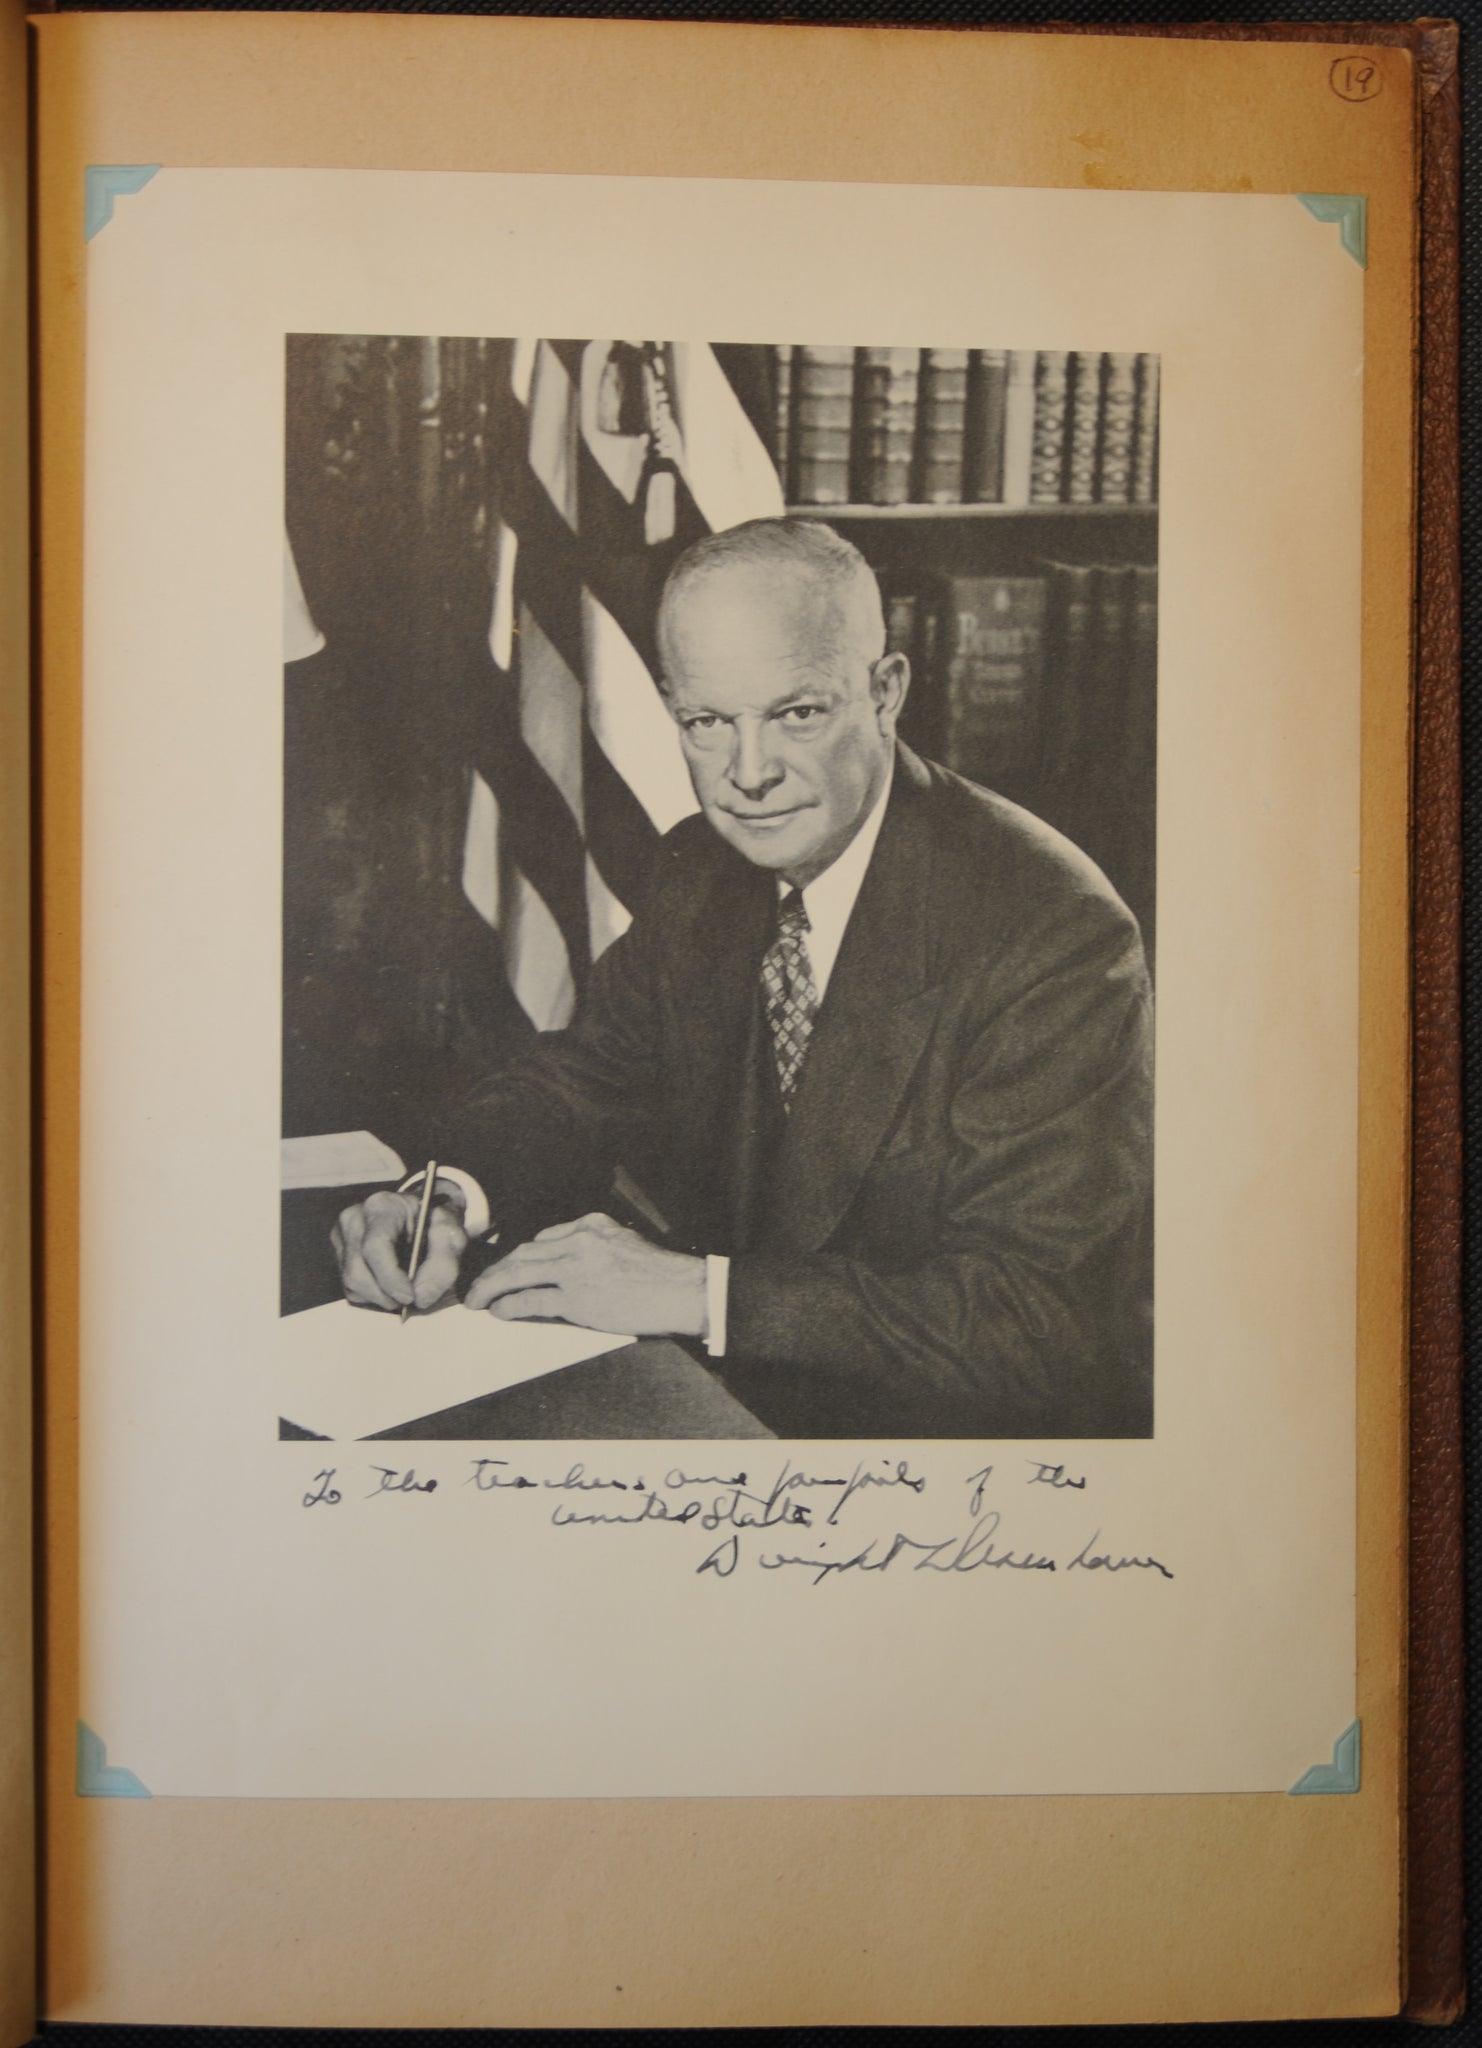 Entry #19: President Eisenhower